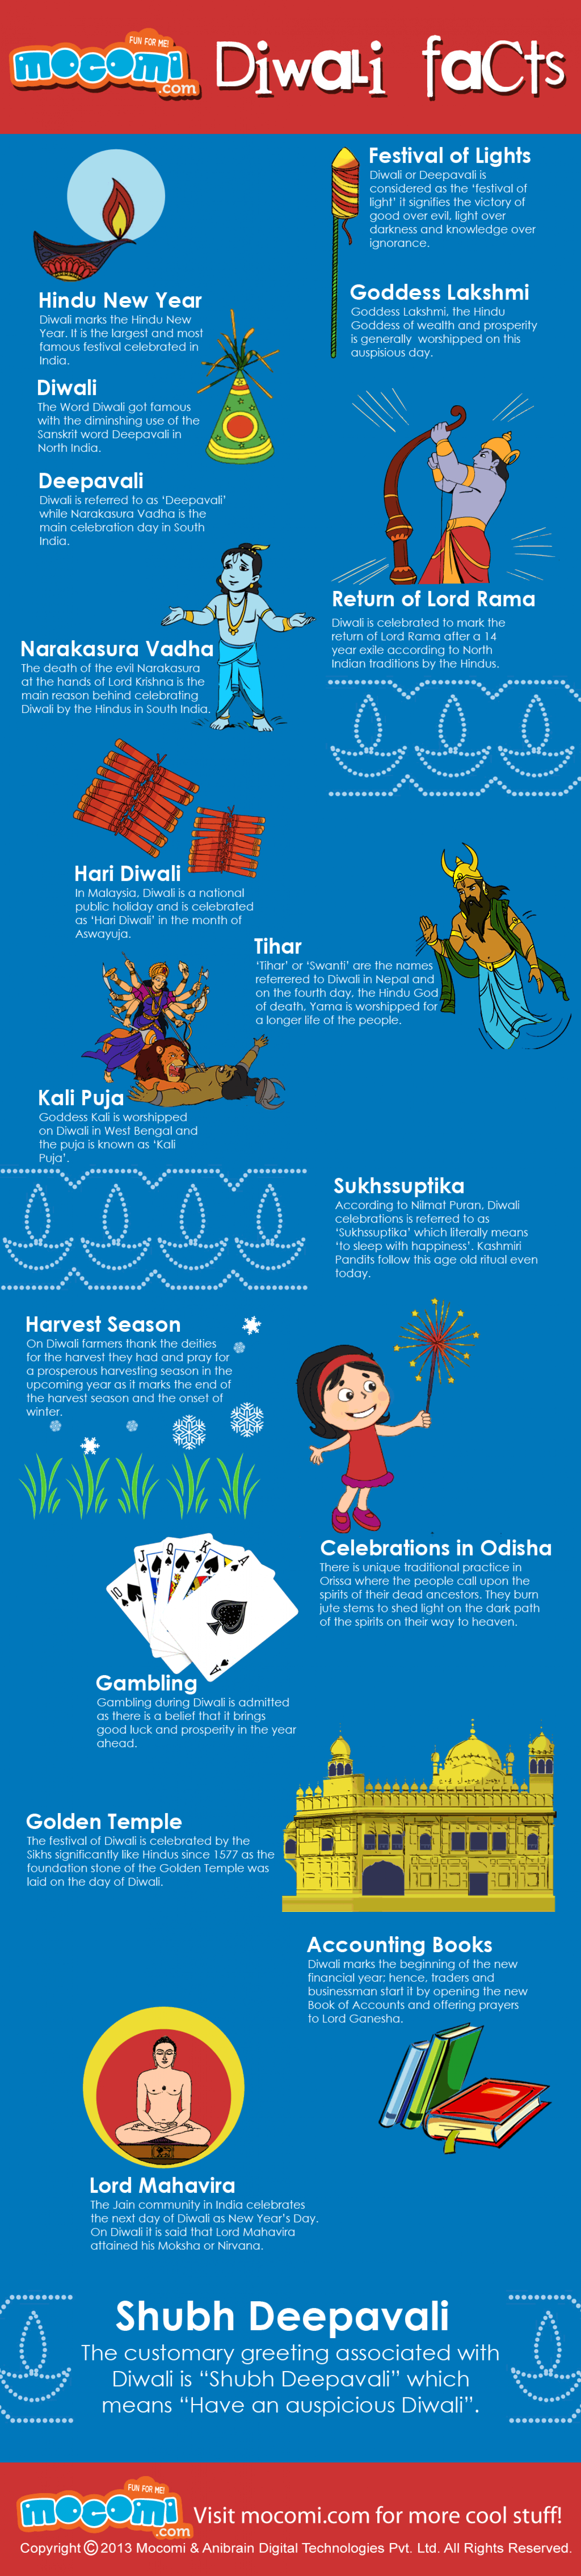 Diwali Facts By Mocomi.com Infographic